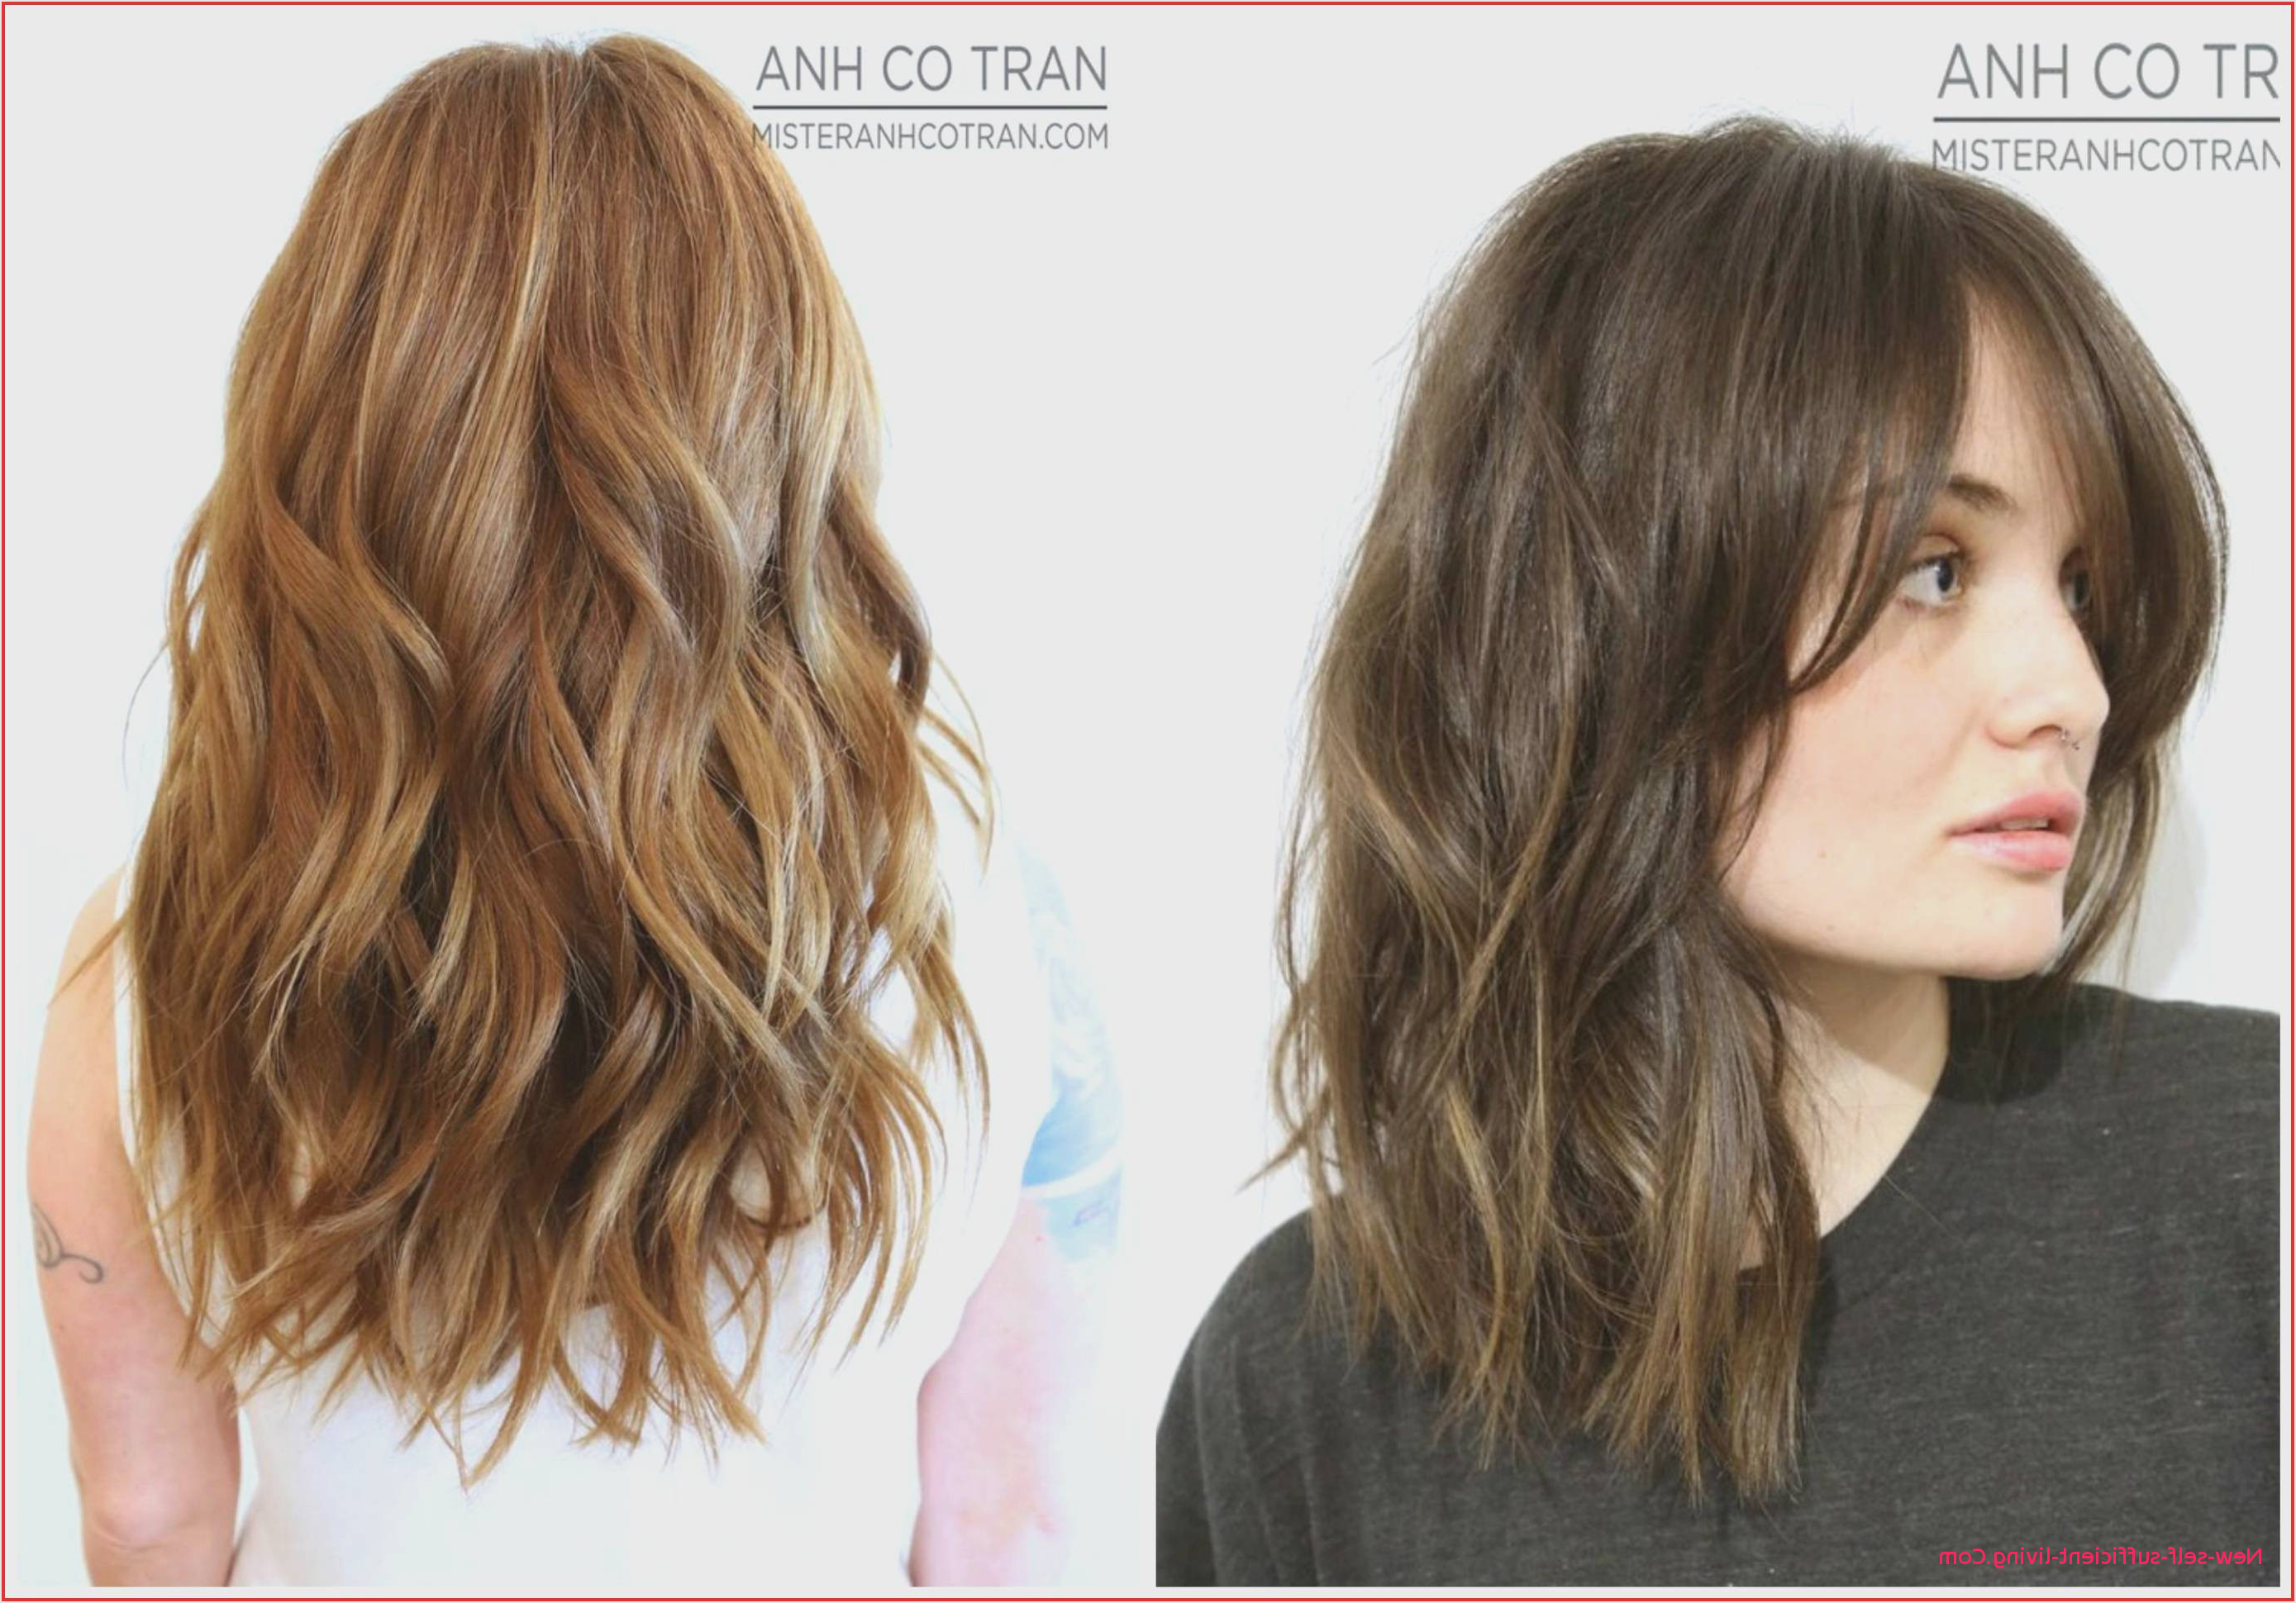 Medium Haircut With Bangs And Layers – Hairstyle Ideas Inside Popular Medium Haircuts With Lots Of Layers (View 17 of 20)